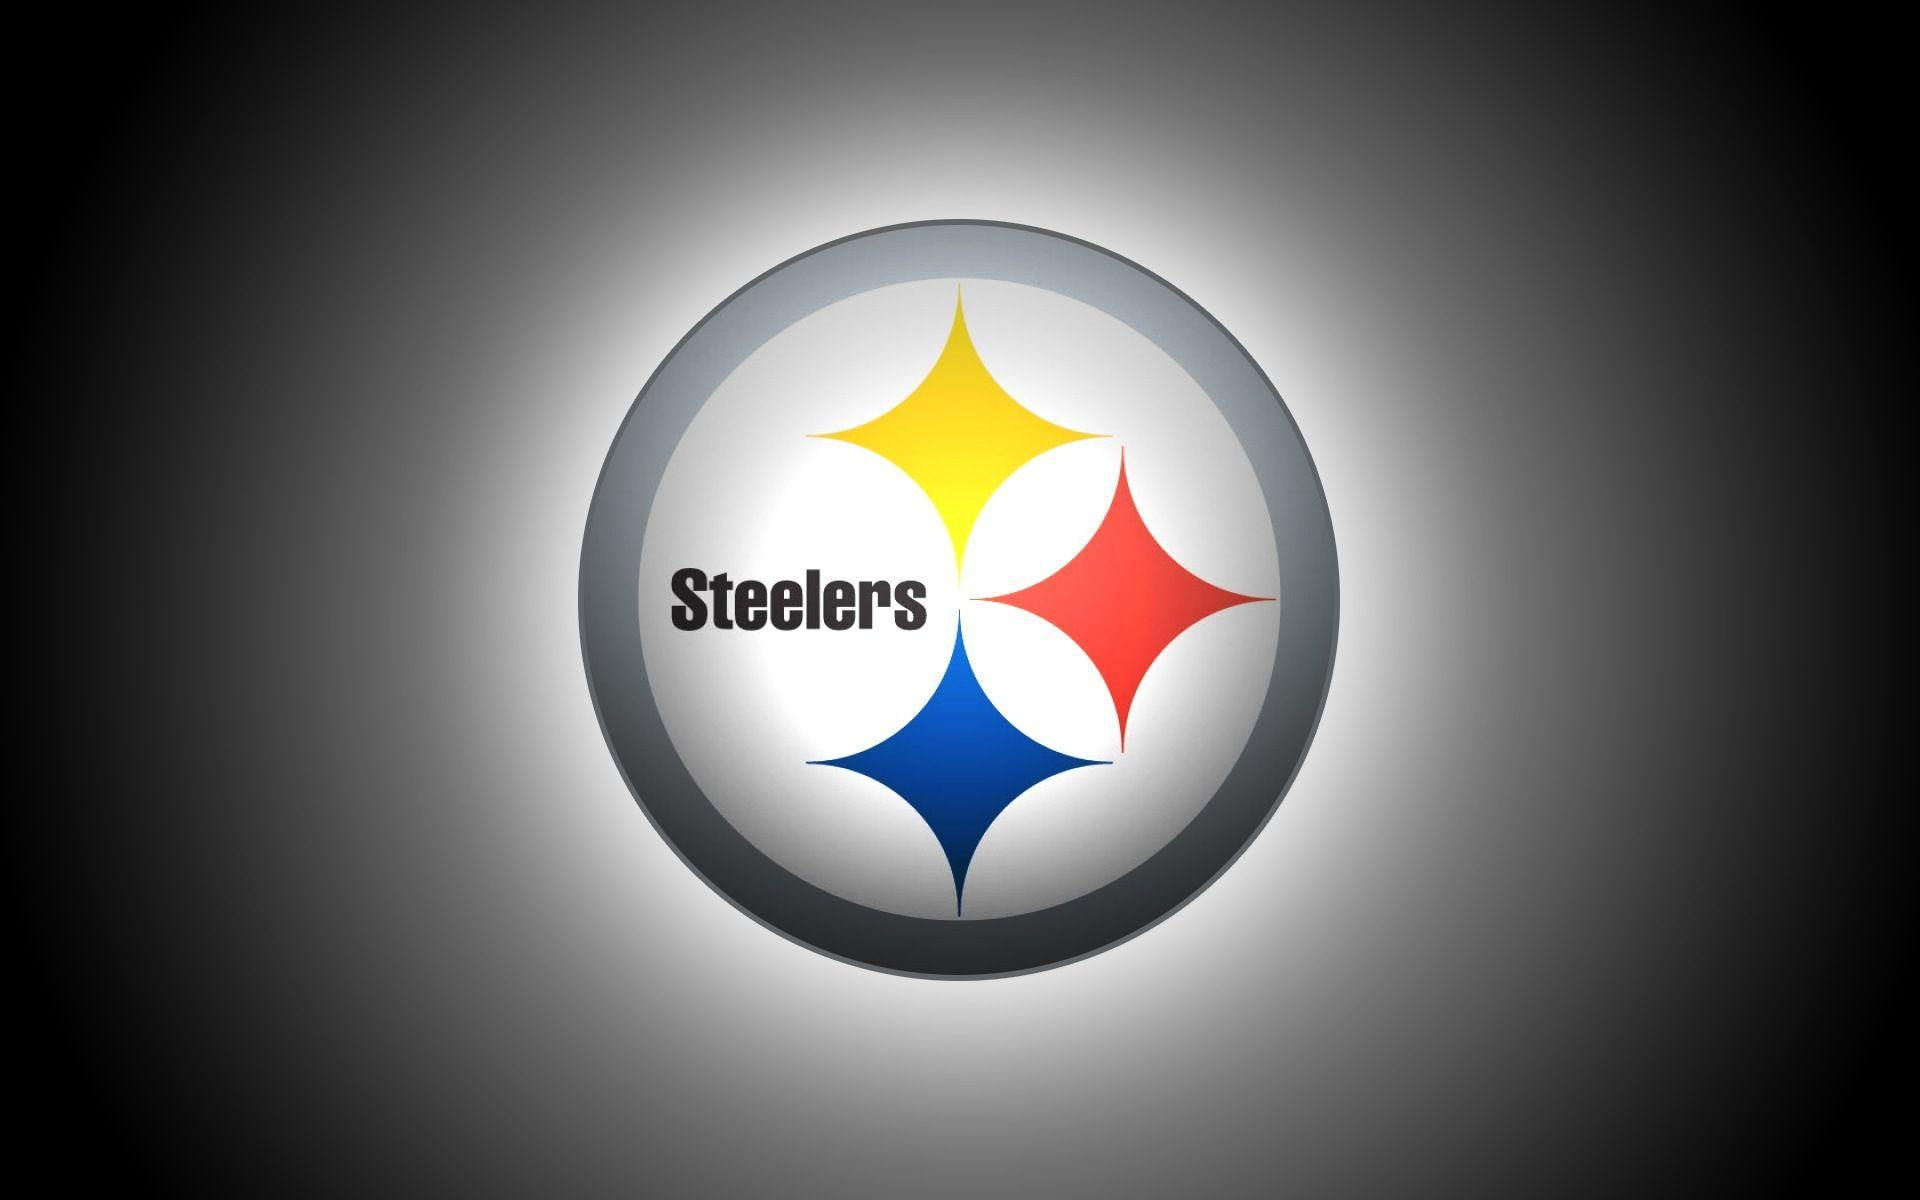 1920x1200 - Steelers Desktop 61